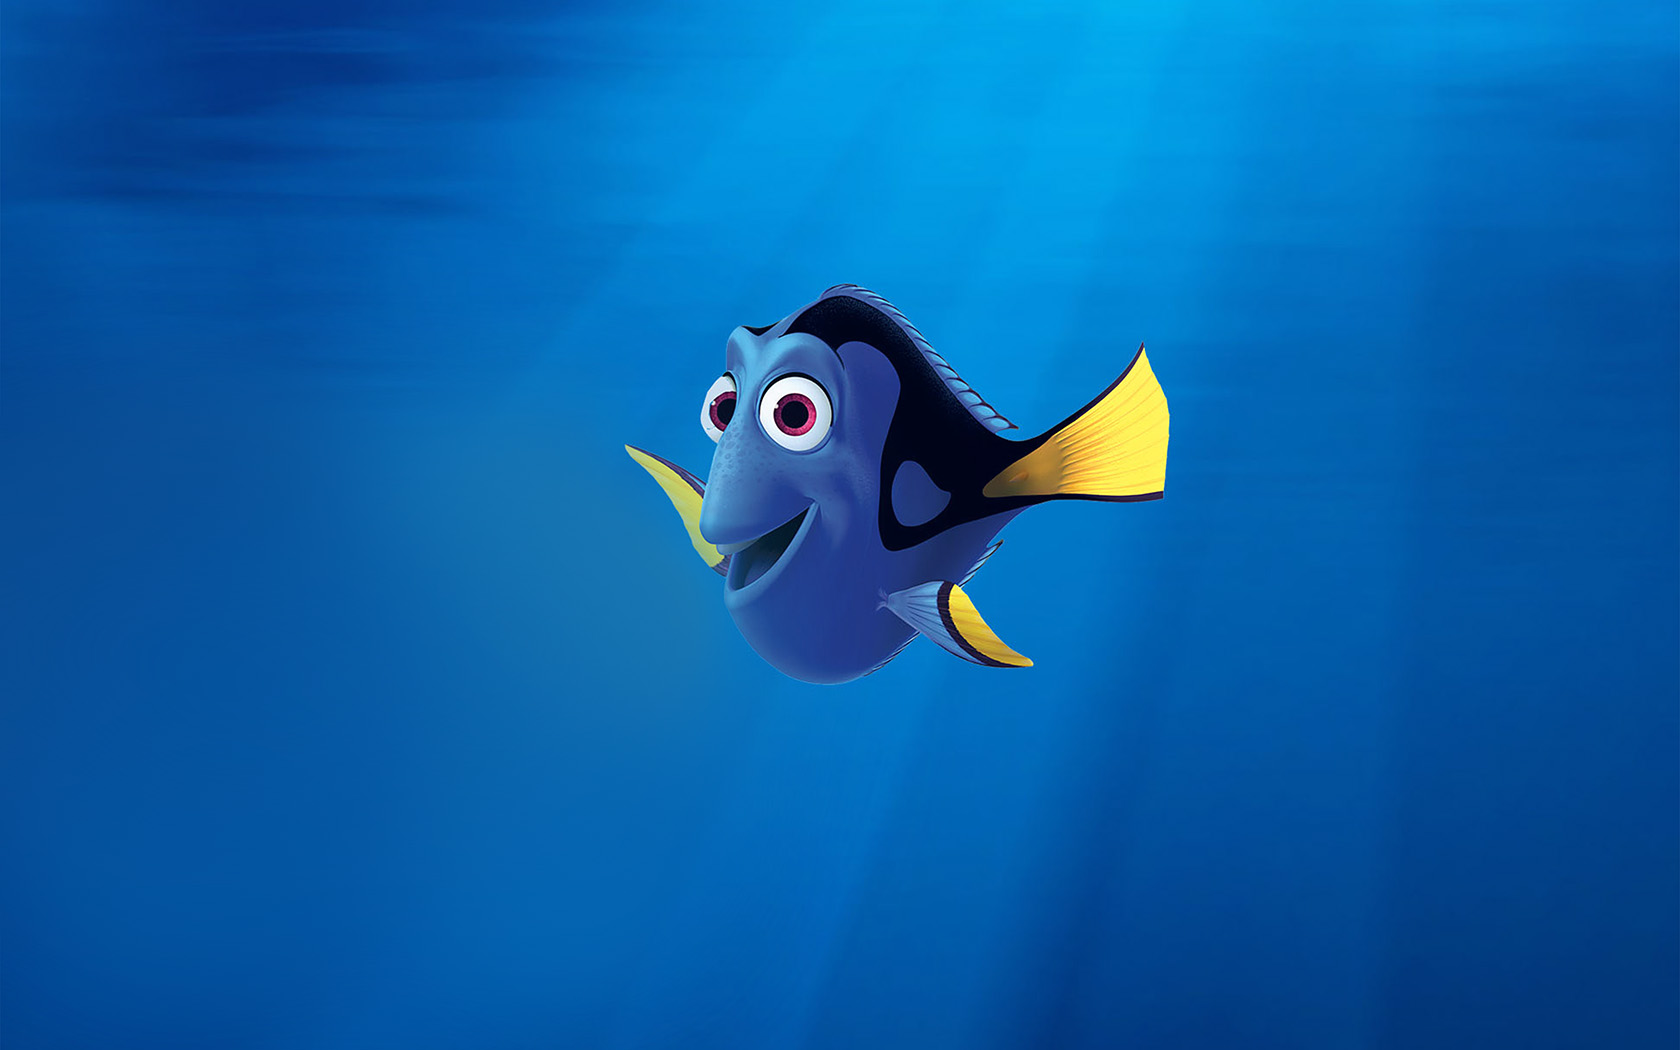 finding nemo introduction to film essay Finding dory: 3 things to do before you go & 3 the main theme of the movie like finding dory, finding nemo has a happy 3 topics to discuss after finding.